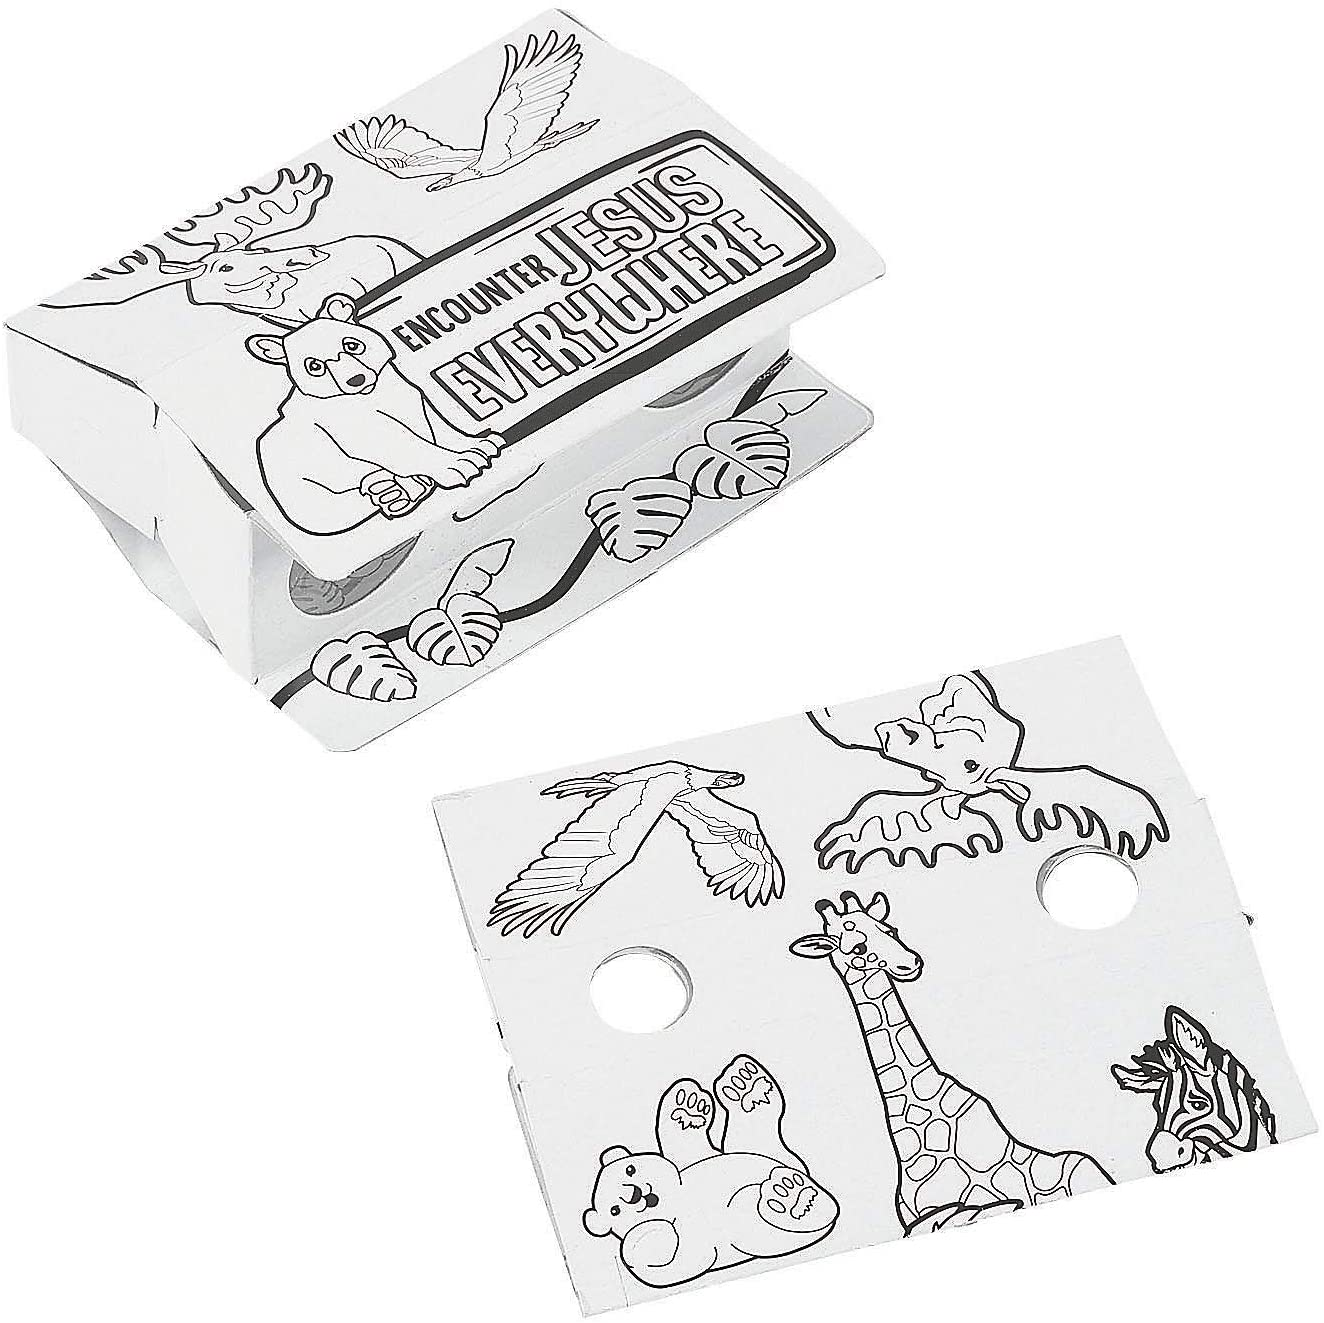 Wild Encounters Vbs Color Your Own Binoculars - Crafts for Kids and Fun Home Activities